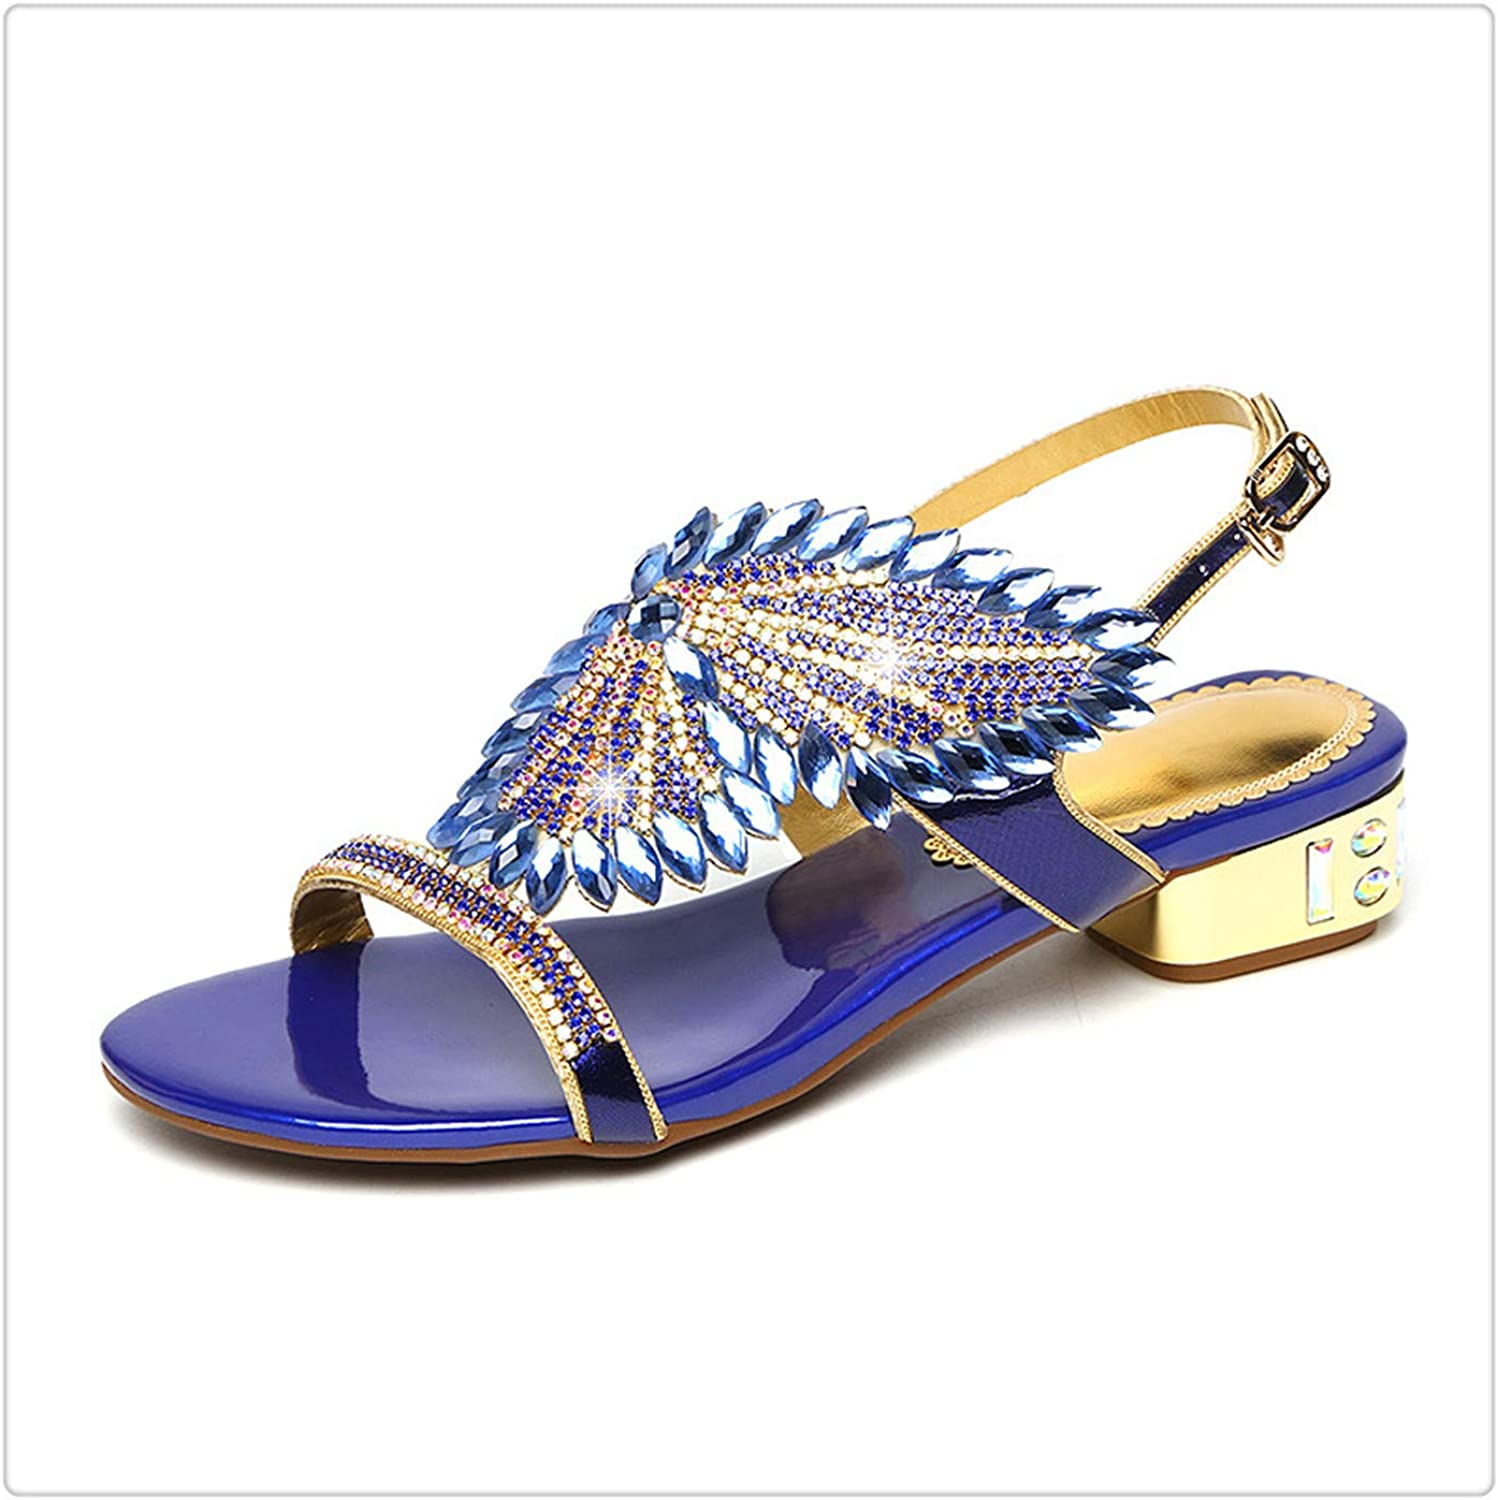 KKEPO& Brand shoes Rhinestone Sandals Women shoes Sandals 2019 Newest Summer Comfort Square Heel shoes Woman Fashion Sandals bluee 9